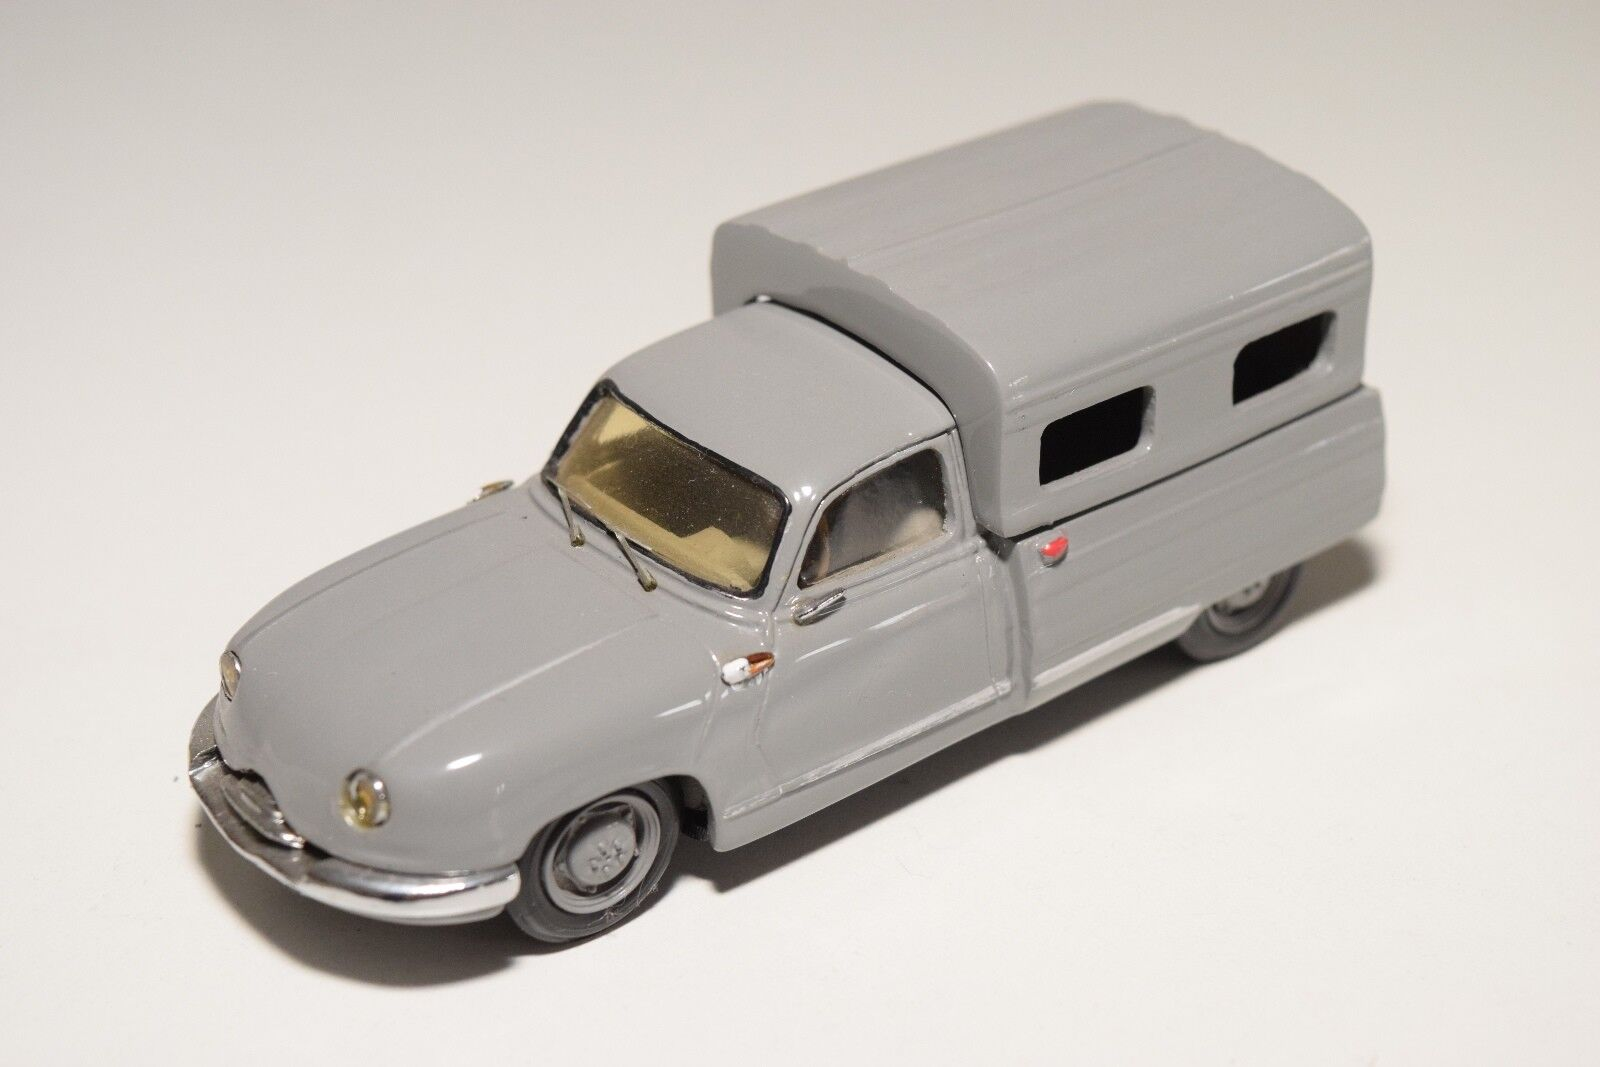 . CCC CLASSIQUES PANHARD DYNA Z PICK UP VAN FOURGON grigio NEAR MINT CONDITION